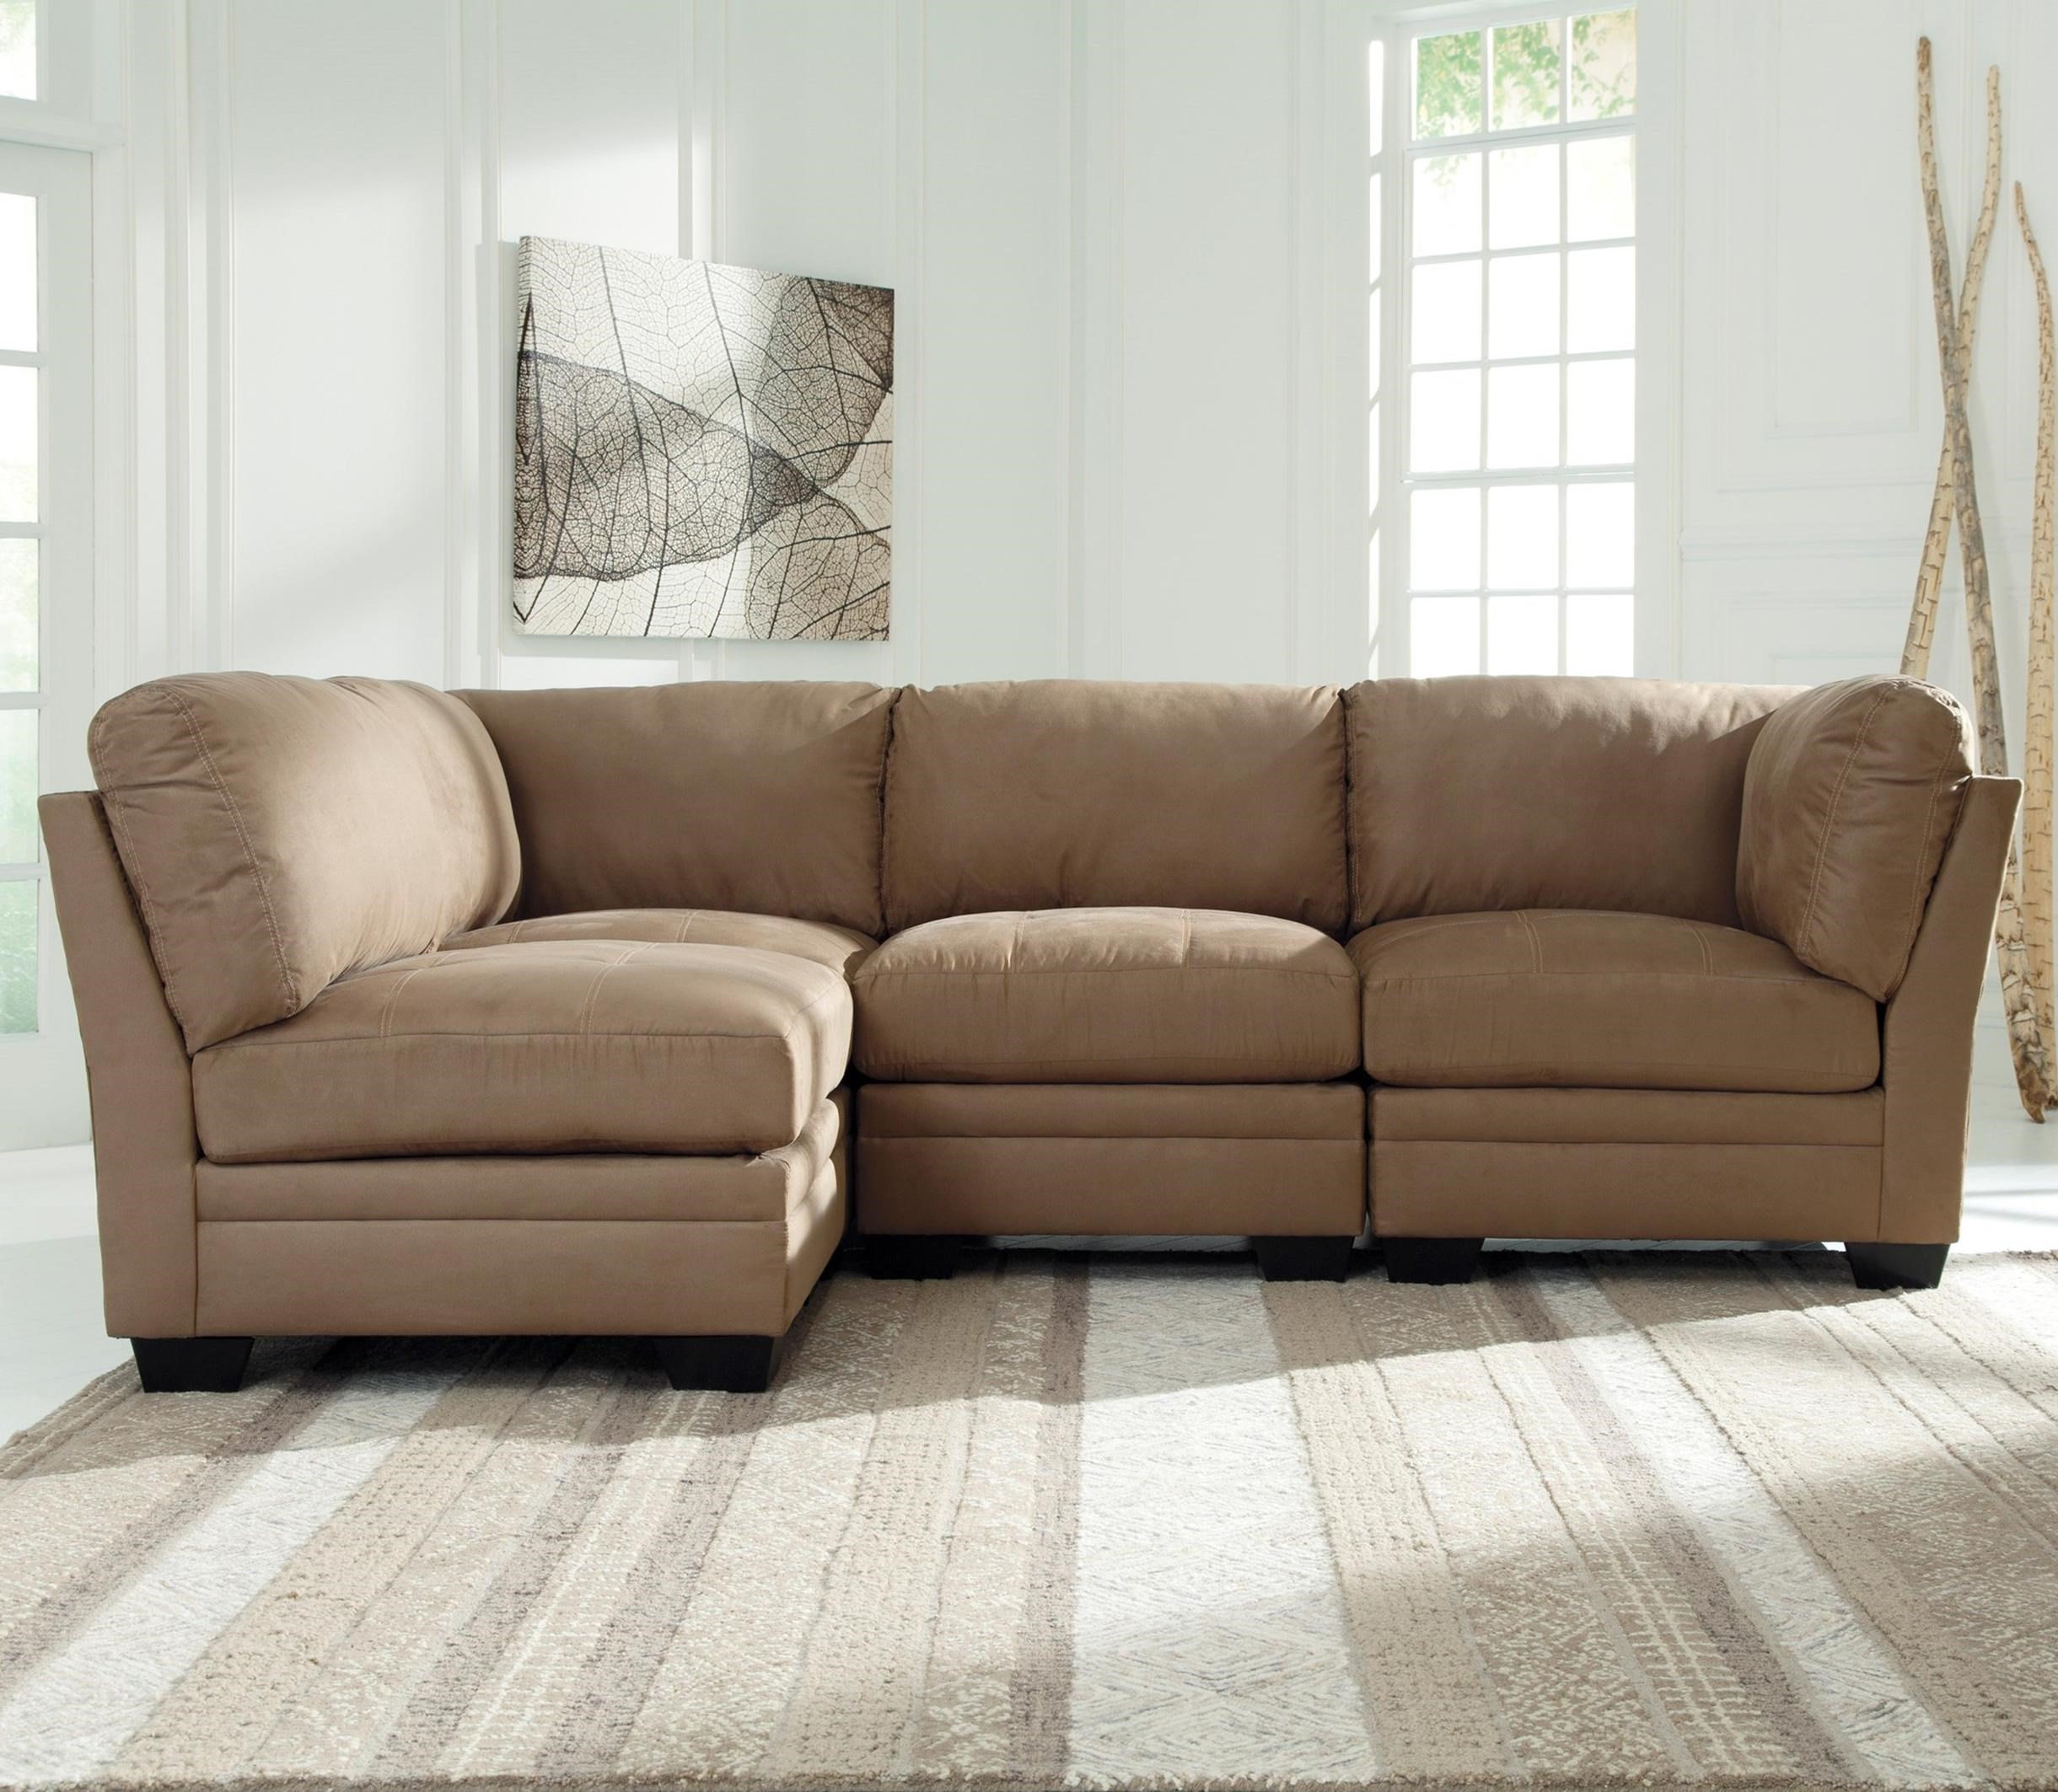 Signature Design by Ashley Iago 4-Piece Modular Sectional - Item Number: 6510546x2+2x51